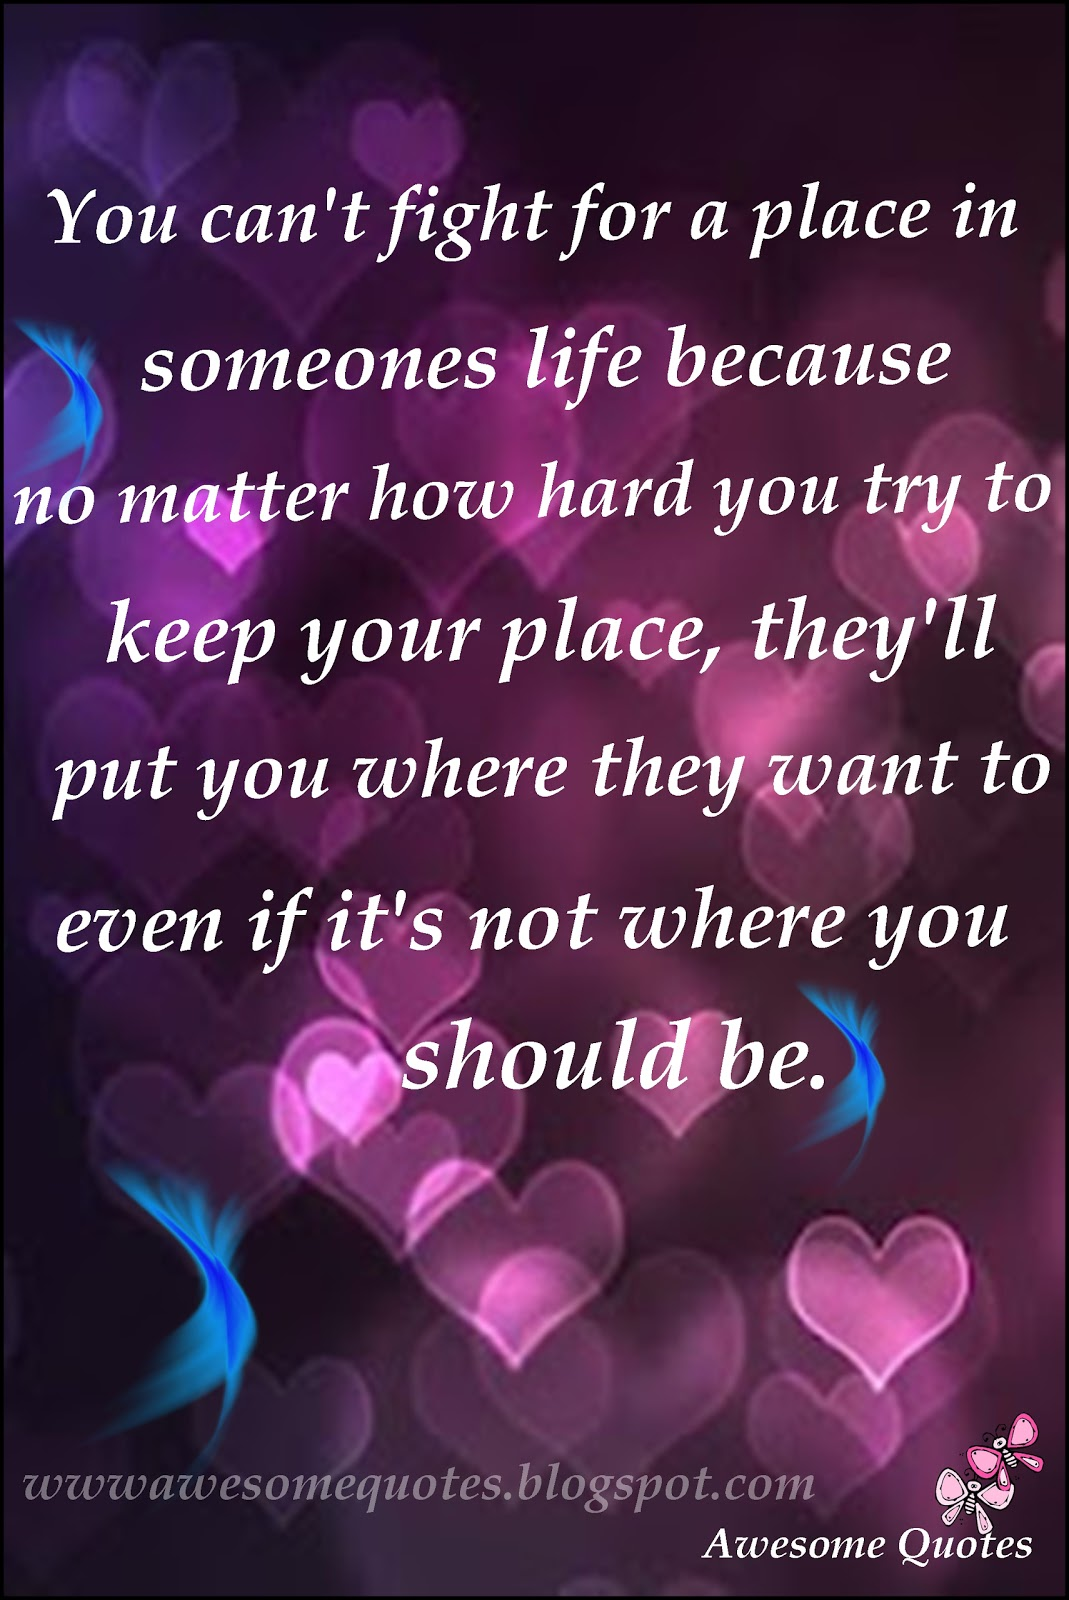 Fight For Your Life Quotes Awesome Quotes You Can't Fight For A Place In Someones Life.